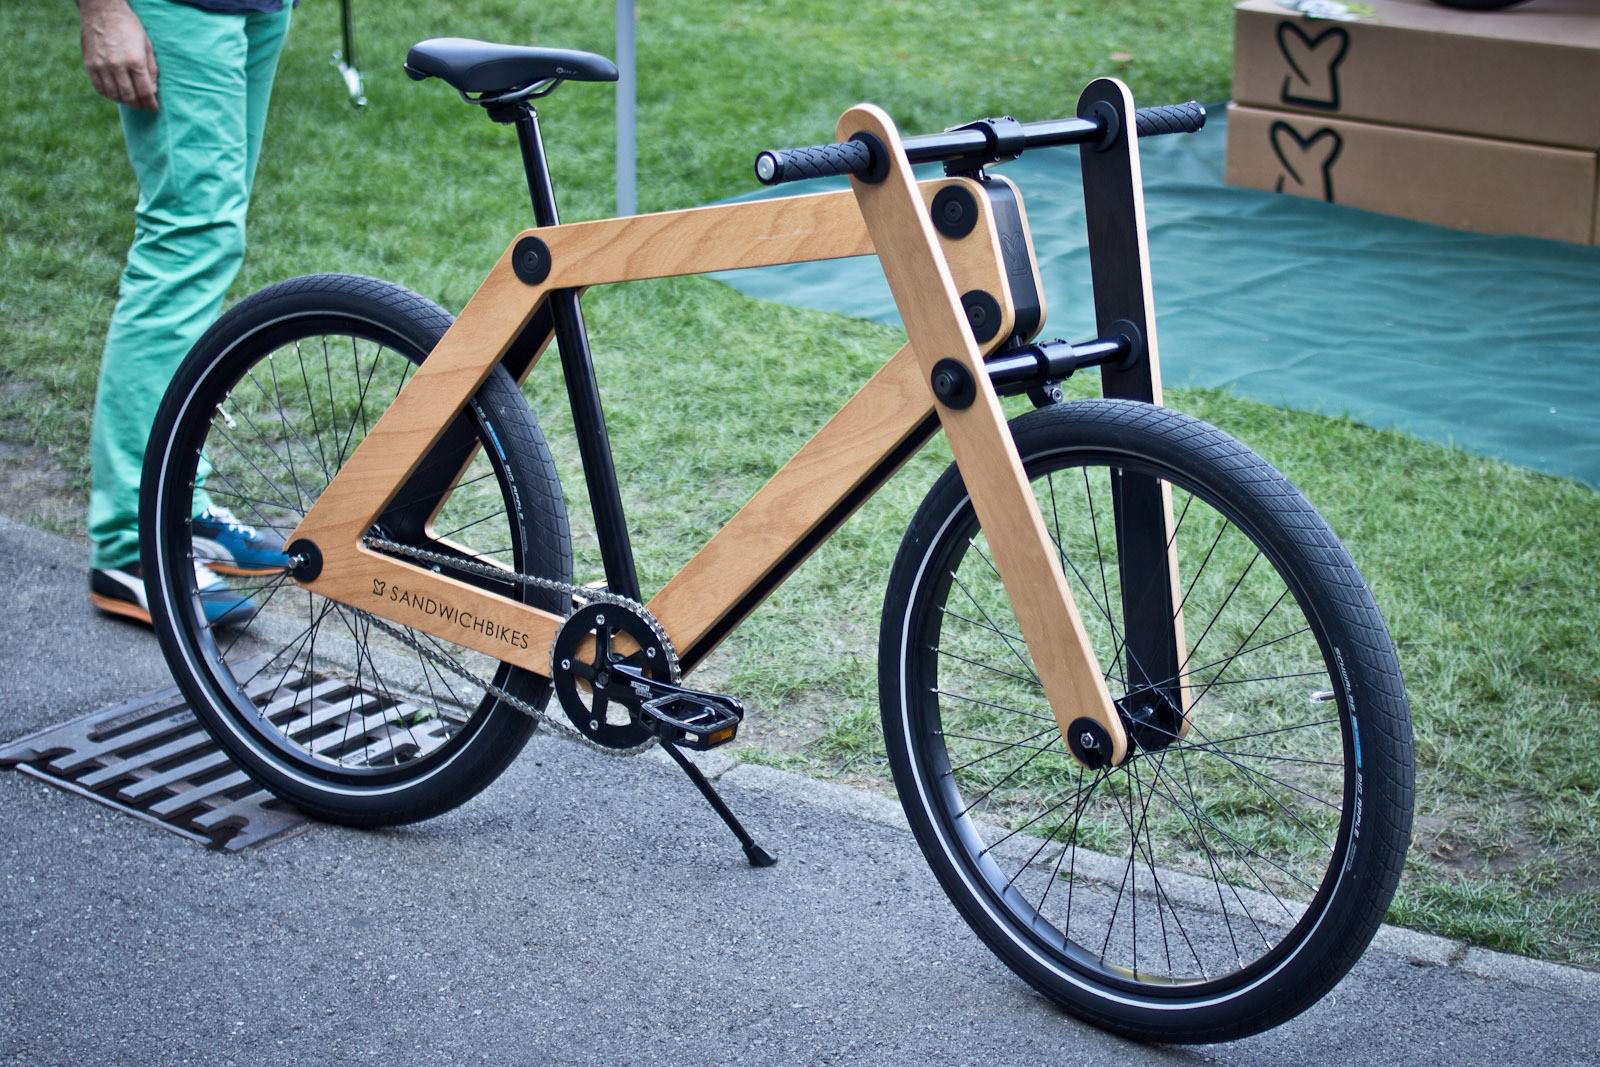 Sandwich Bike - Randoms at Eurobike 2013 - Mountain Biking Pictures - Vital MTB